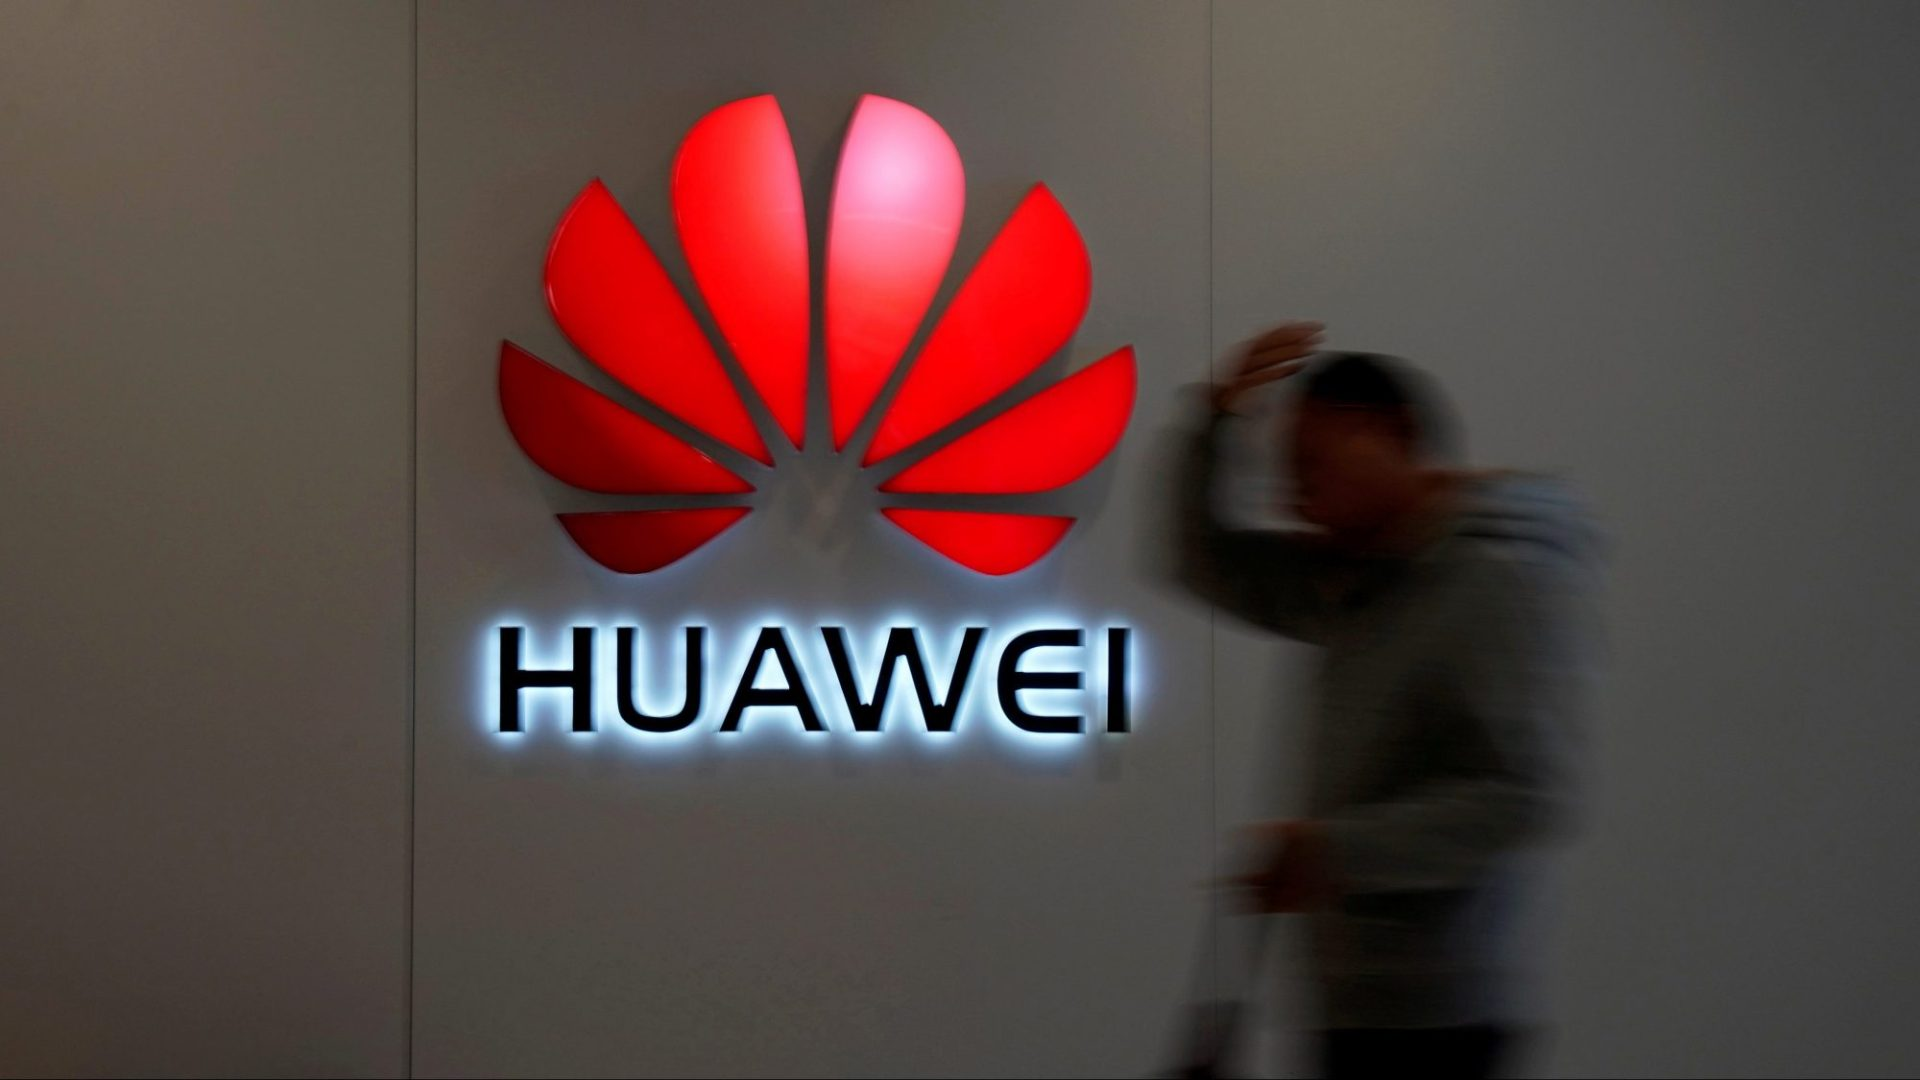 Telecom industry calls for Europe-wide network testing to avoid banning vendors such as Huawei